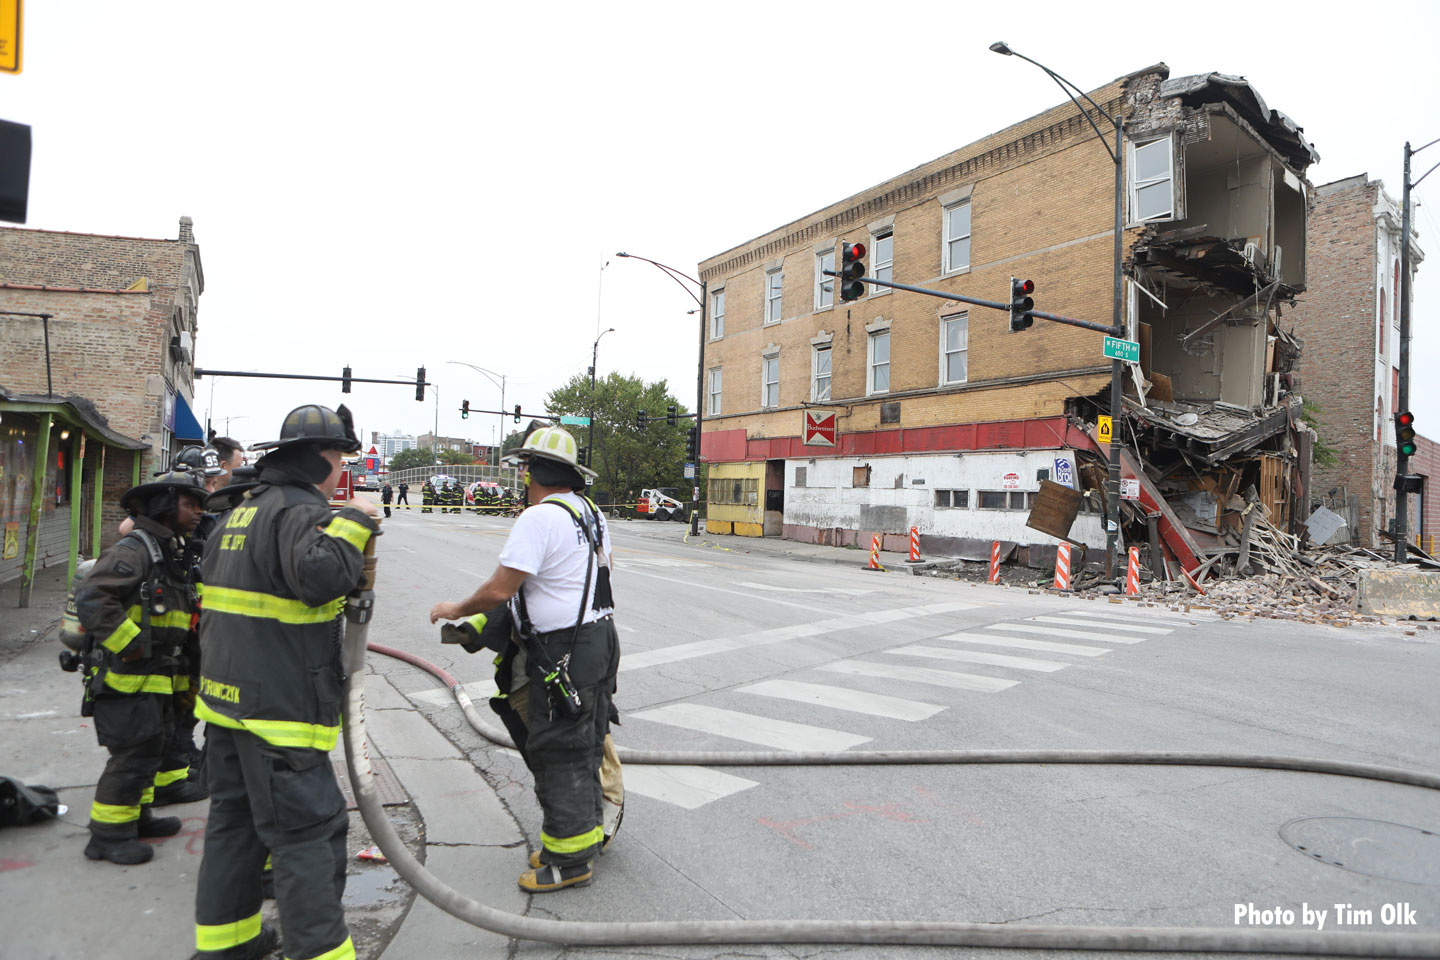 Chicago fire members assess the situation.